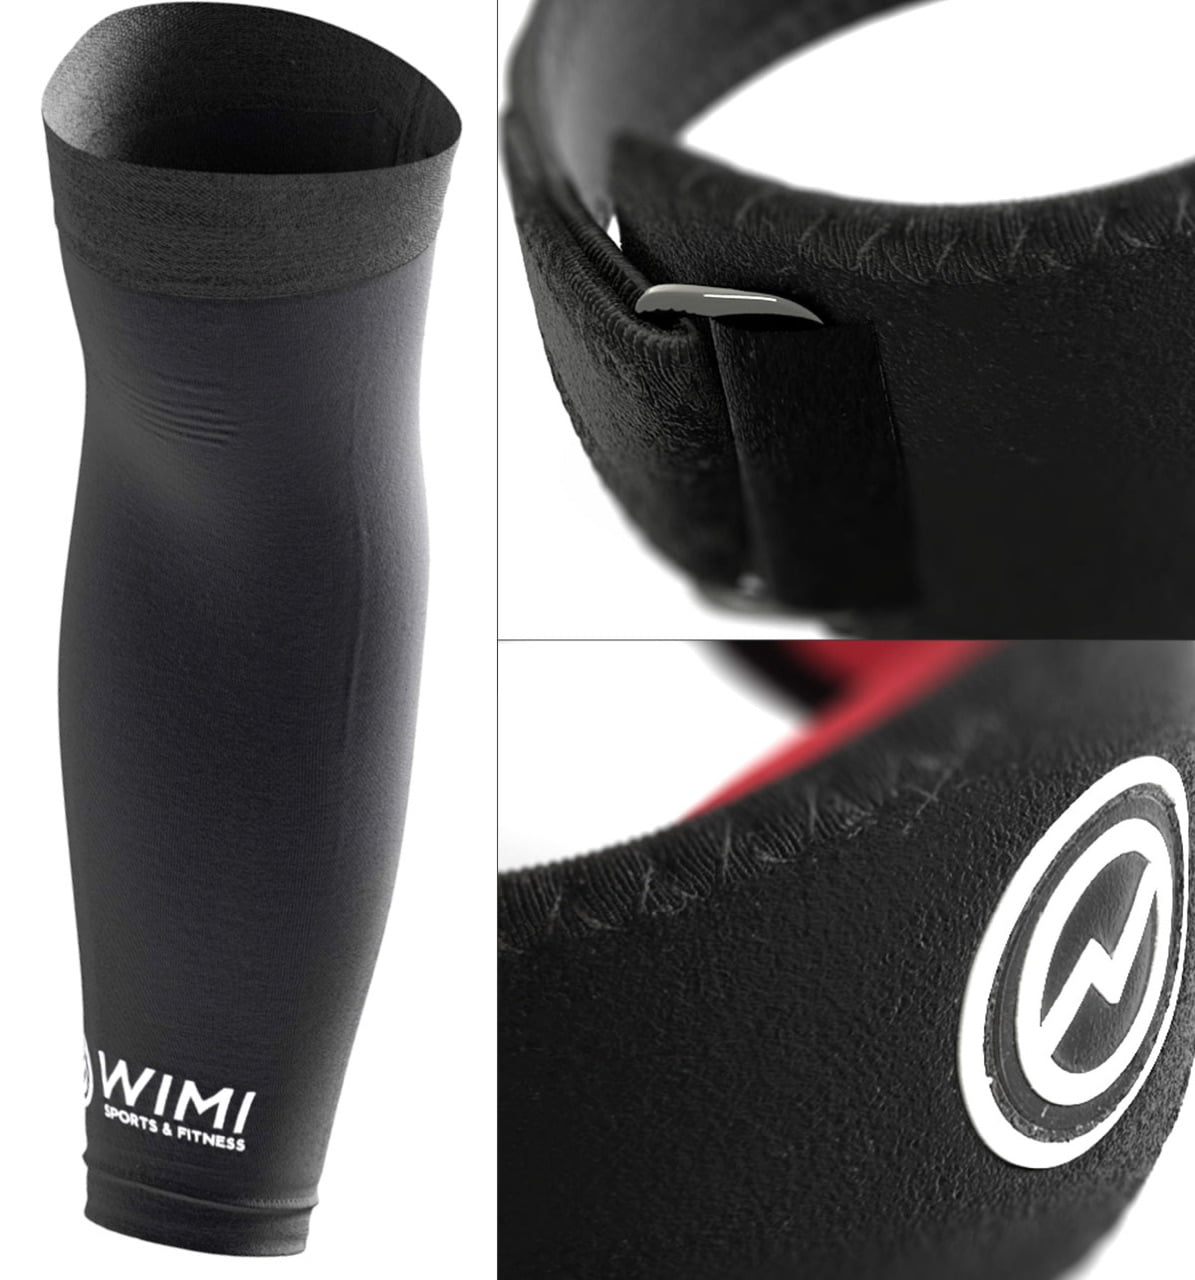 WIMI Sports & Fitness Aims to Revolutionize Elbow Support